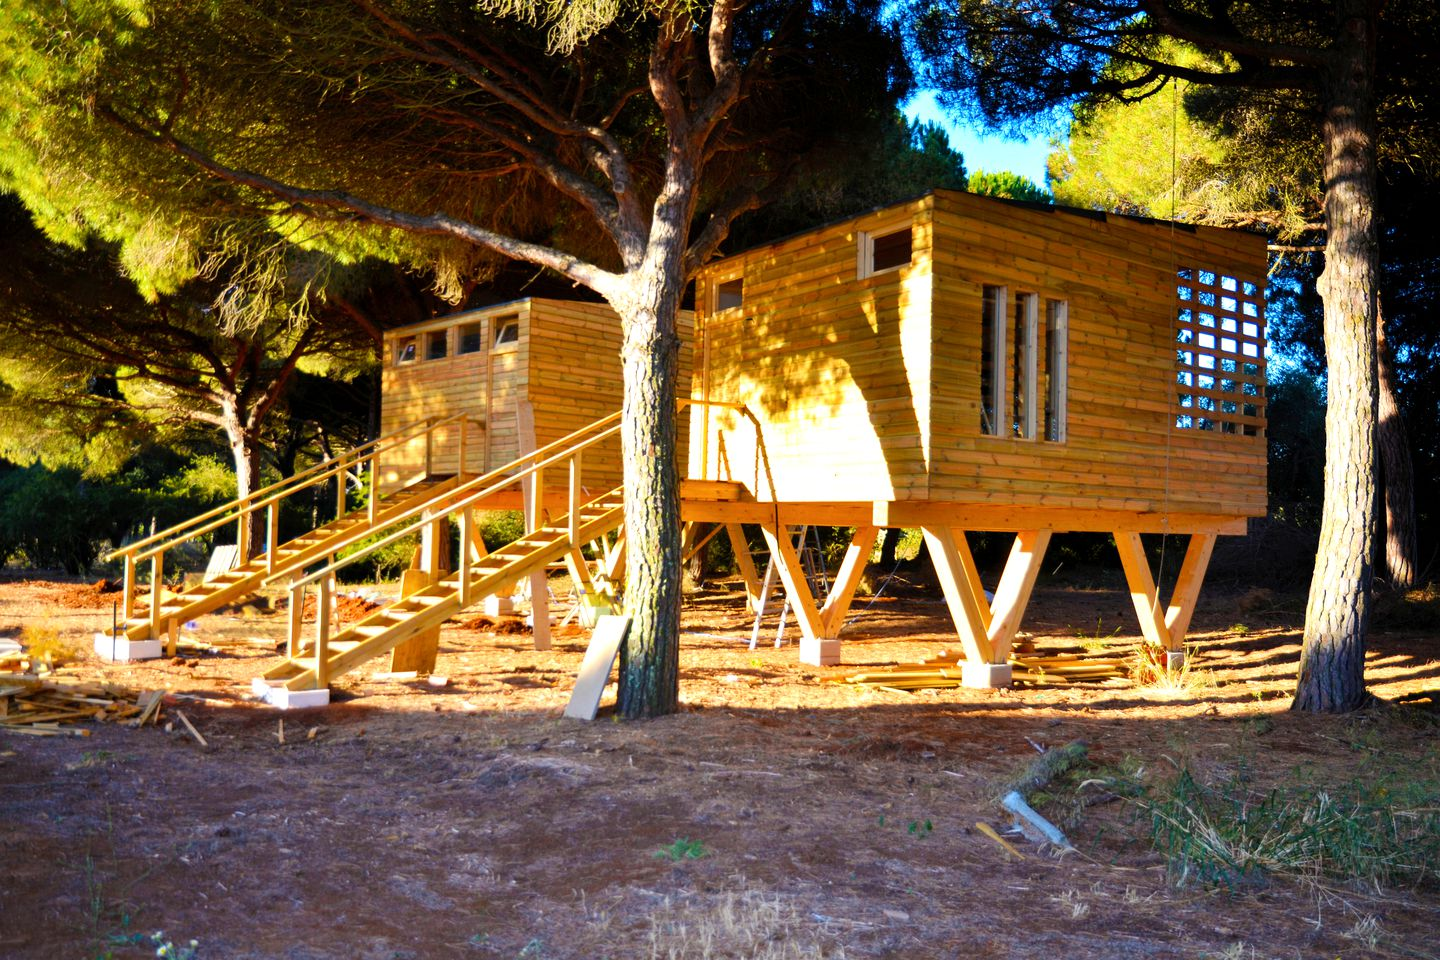 Tree Houses (Vejer de la Frontera, Andalusia, Spain)